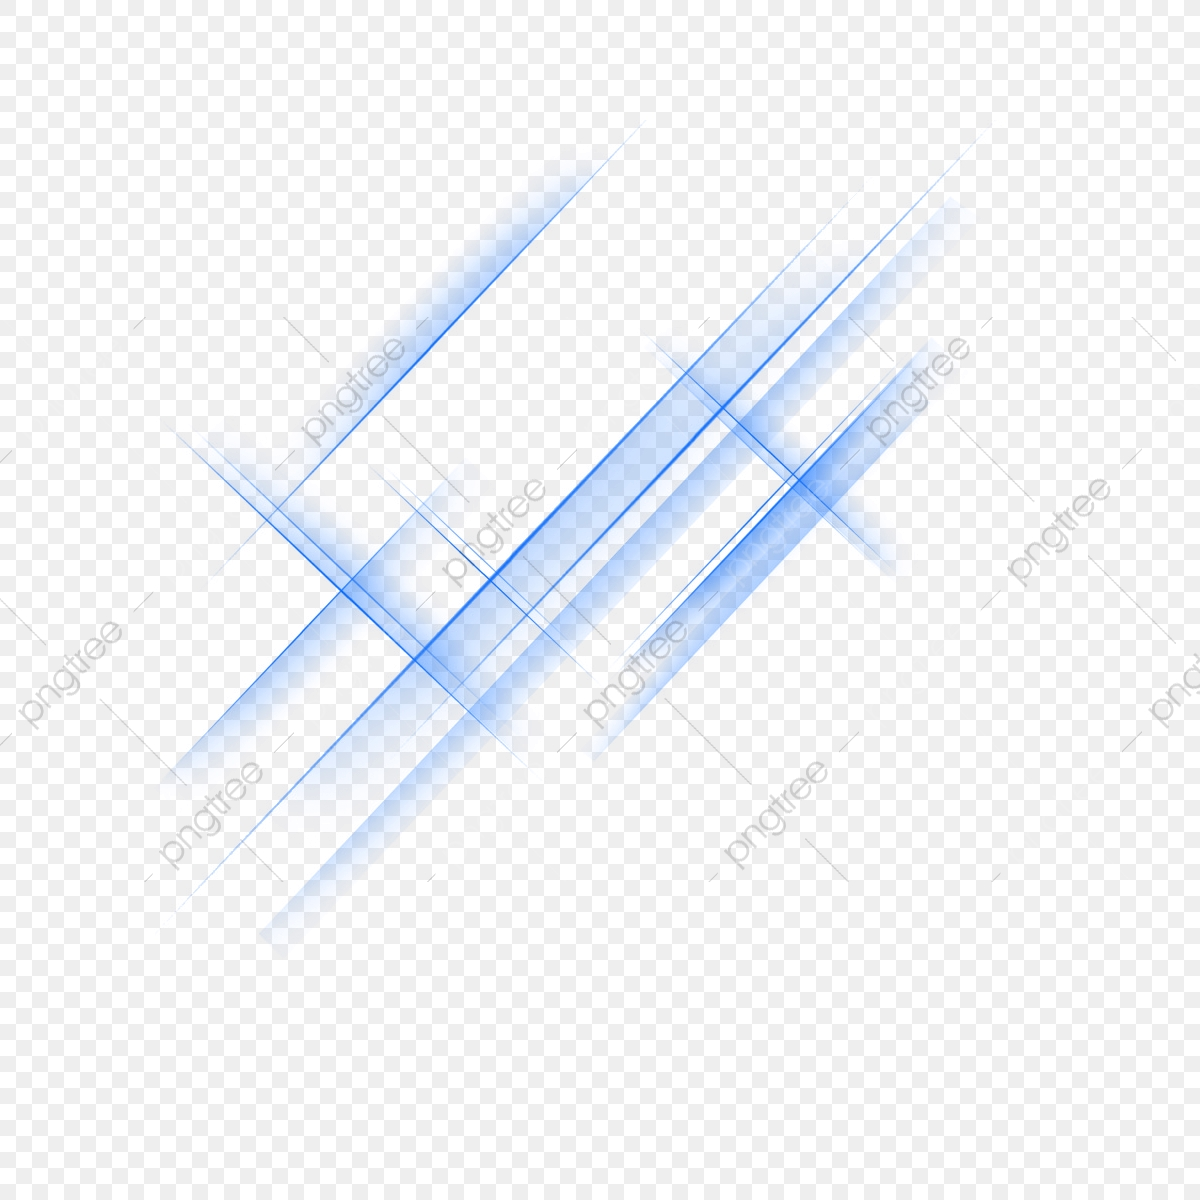 Vector Lines Png - Abstract Lines Png Free Vector Line Psd, Abstract Lines Png, Free ...